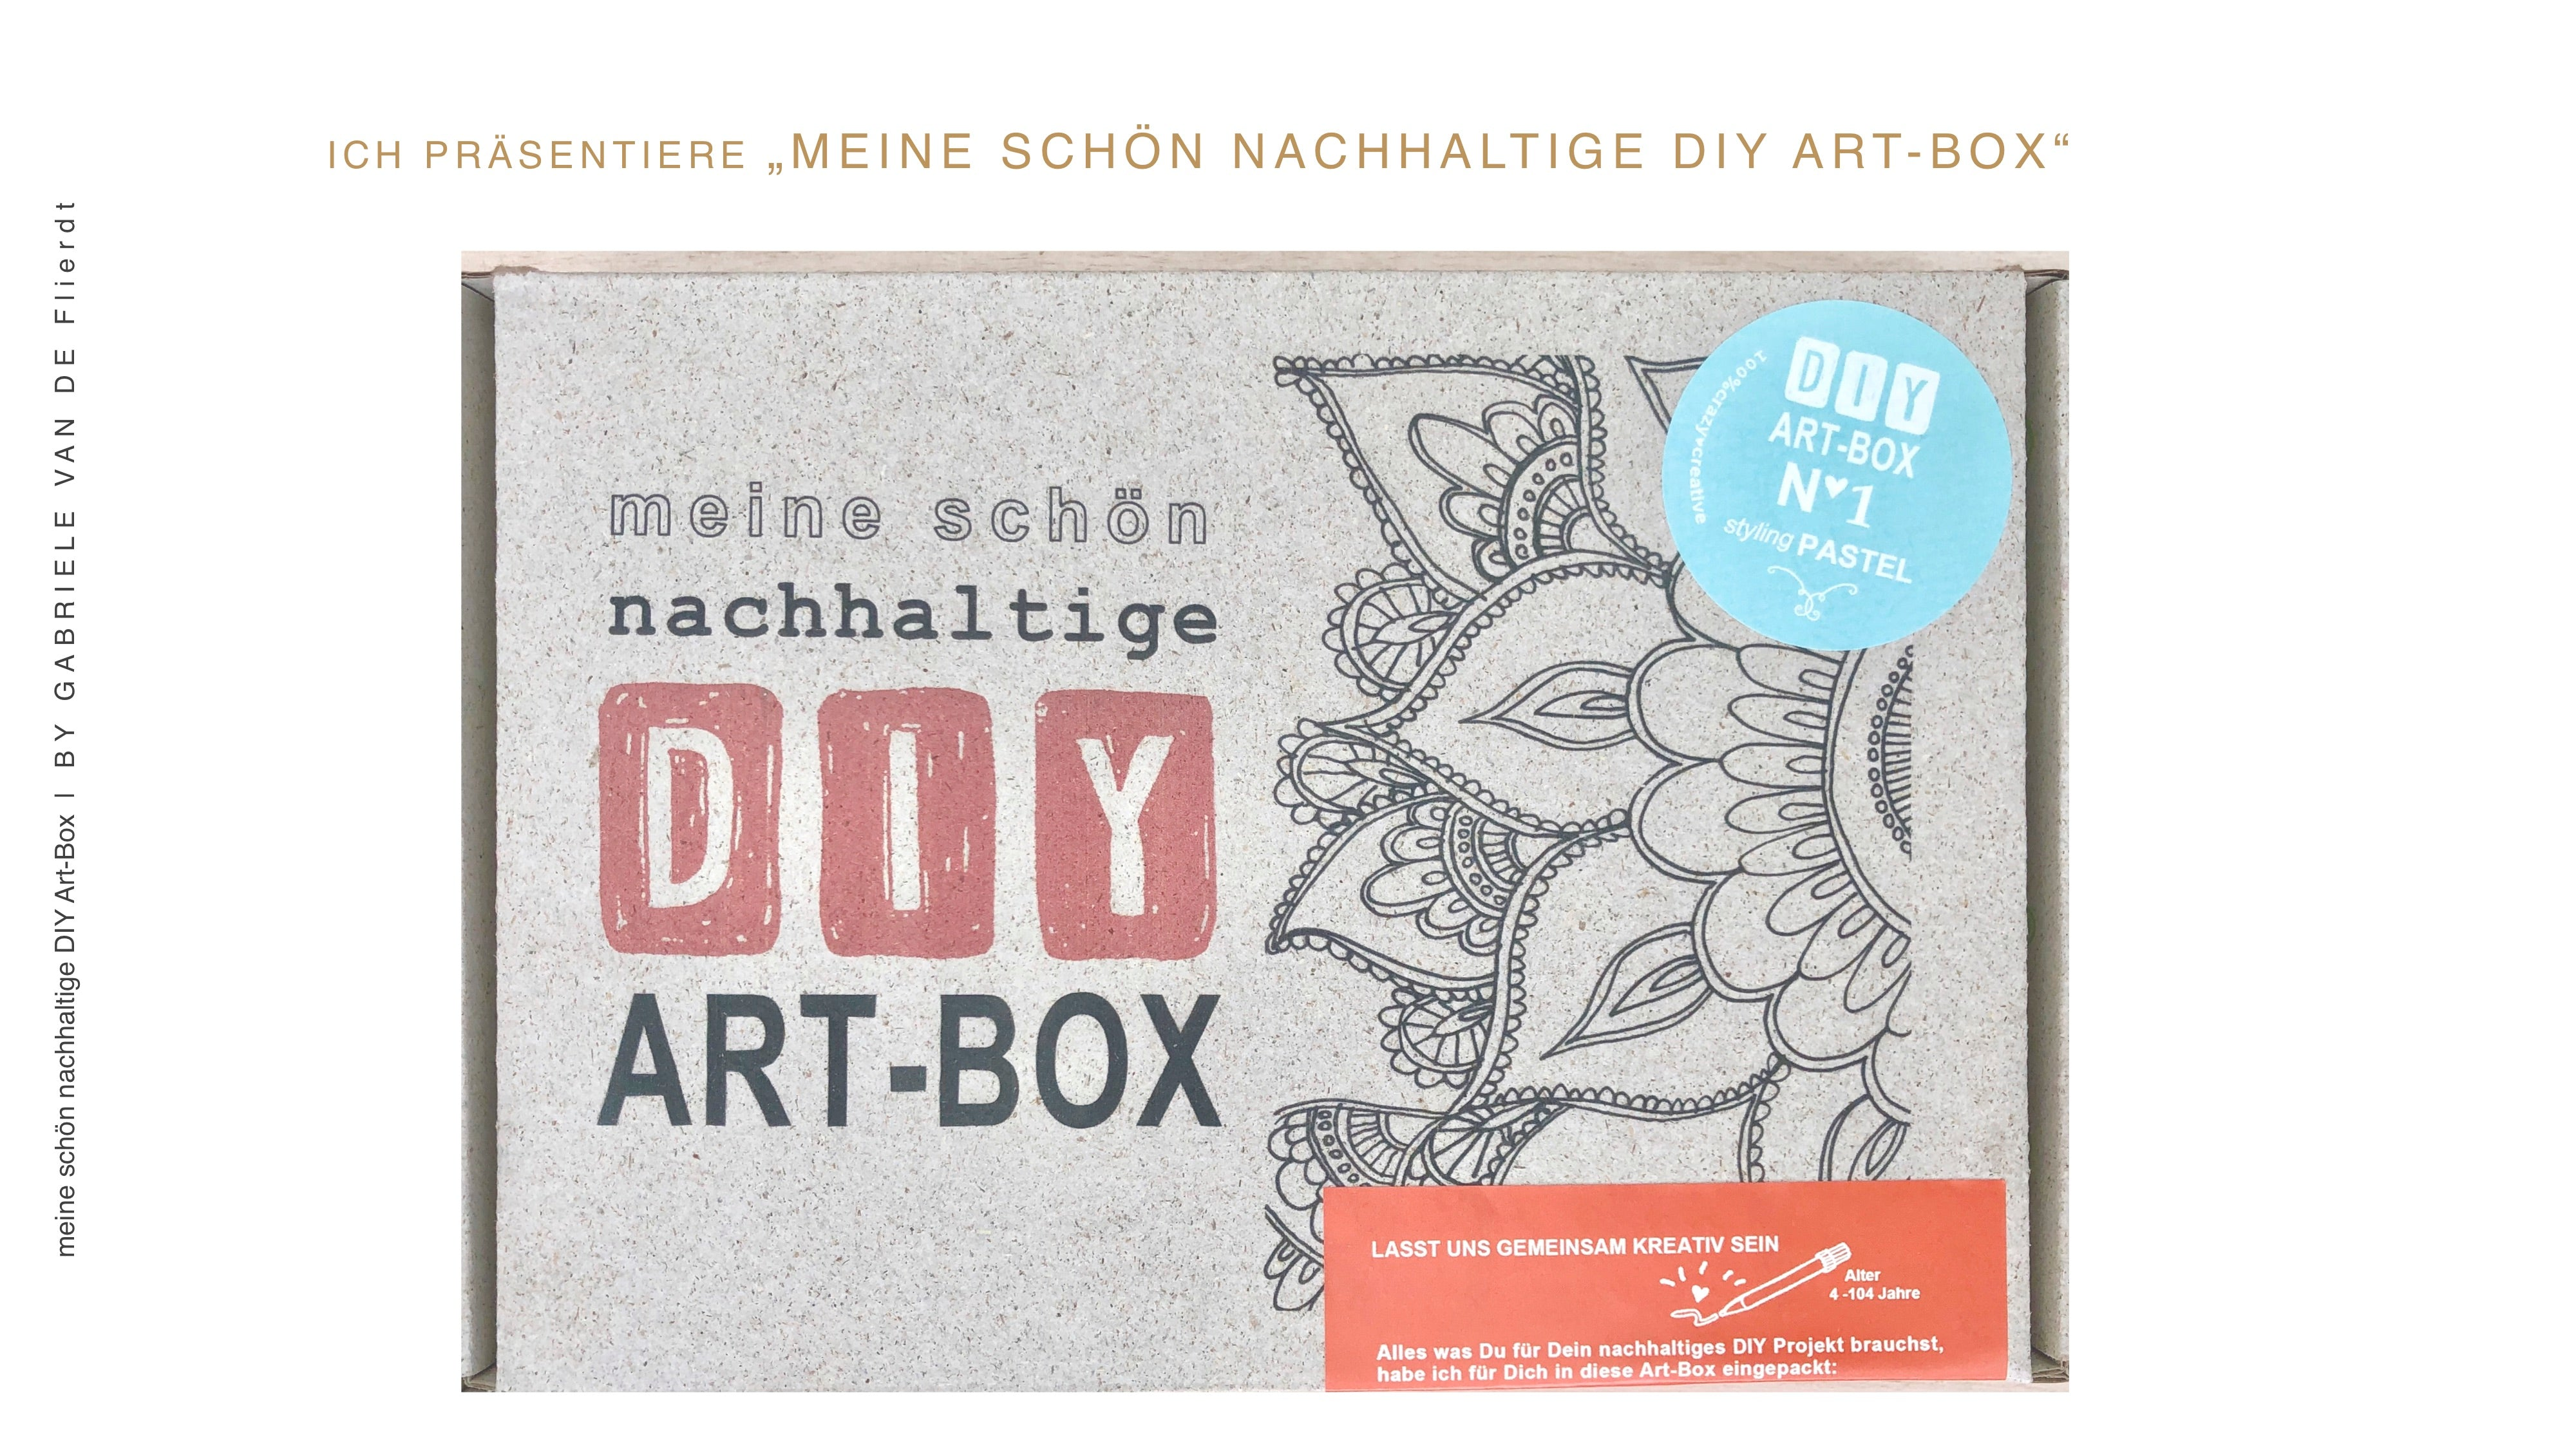 crazycreative.de-by gabriele-van-de-flierdt-diy-art-box-nr-1-photo-box-presentation